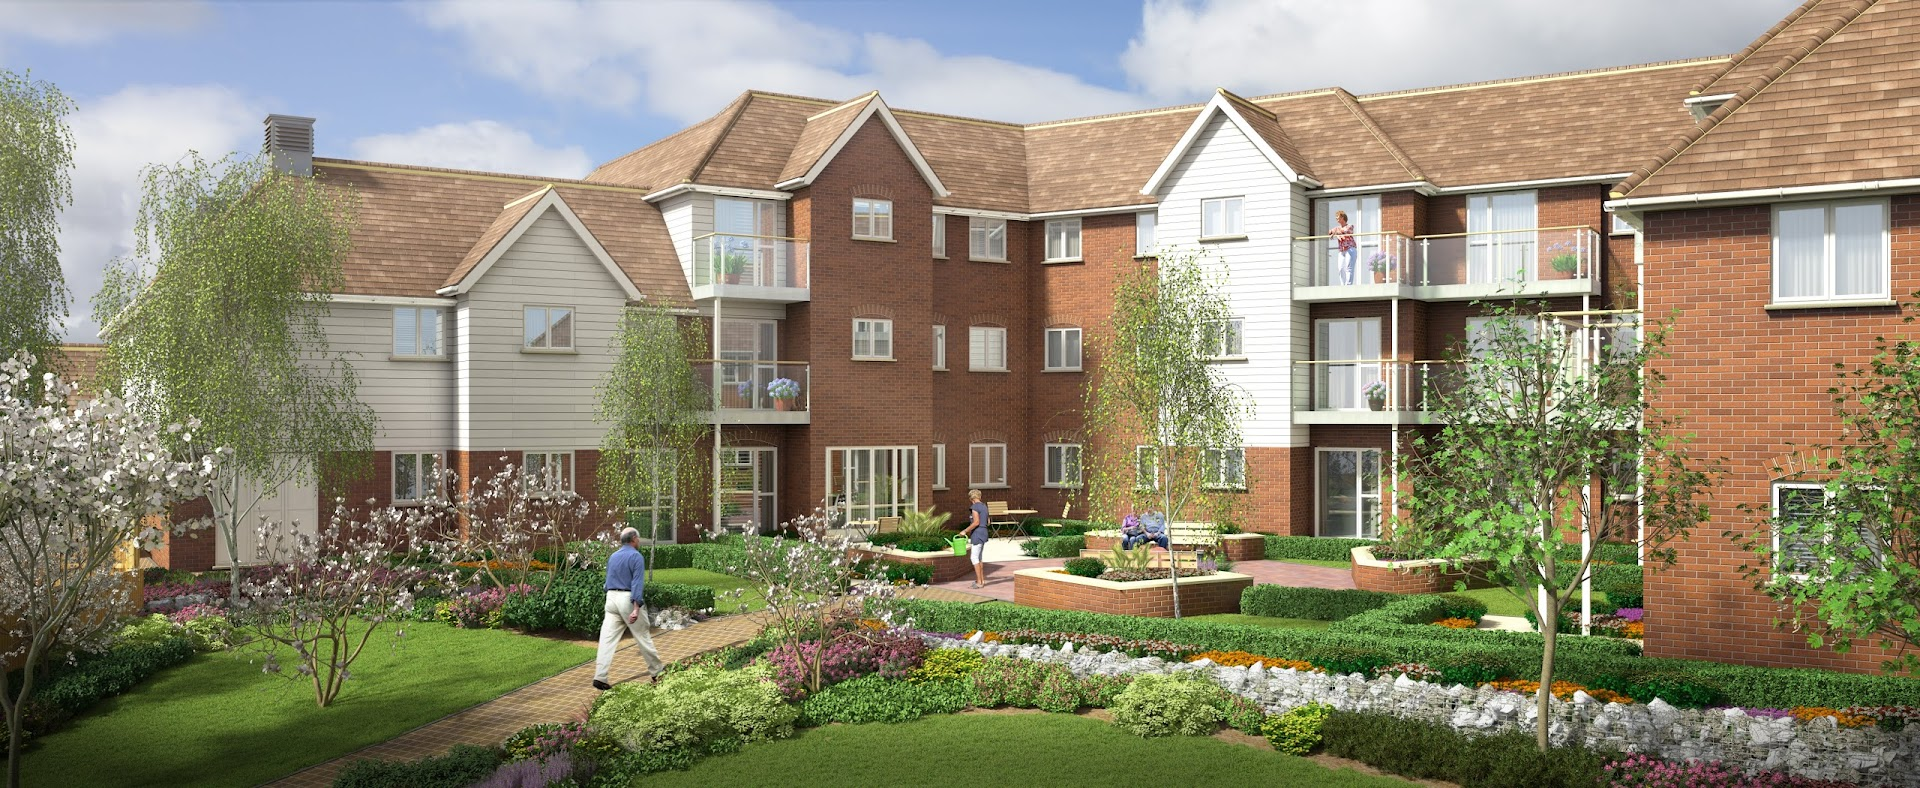 McCarthy and Stone Retirement apartments in Tenterden